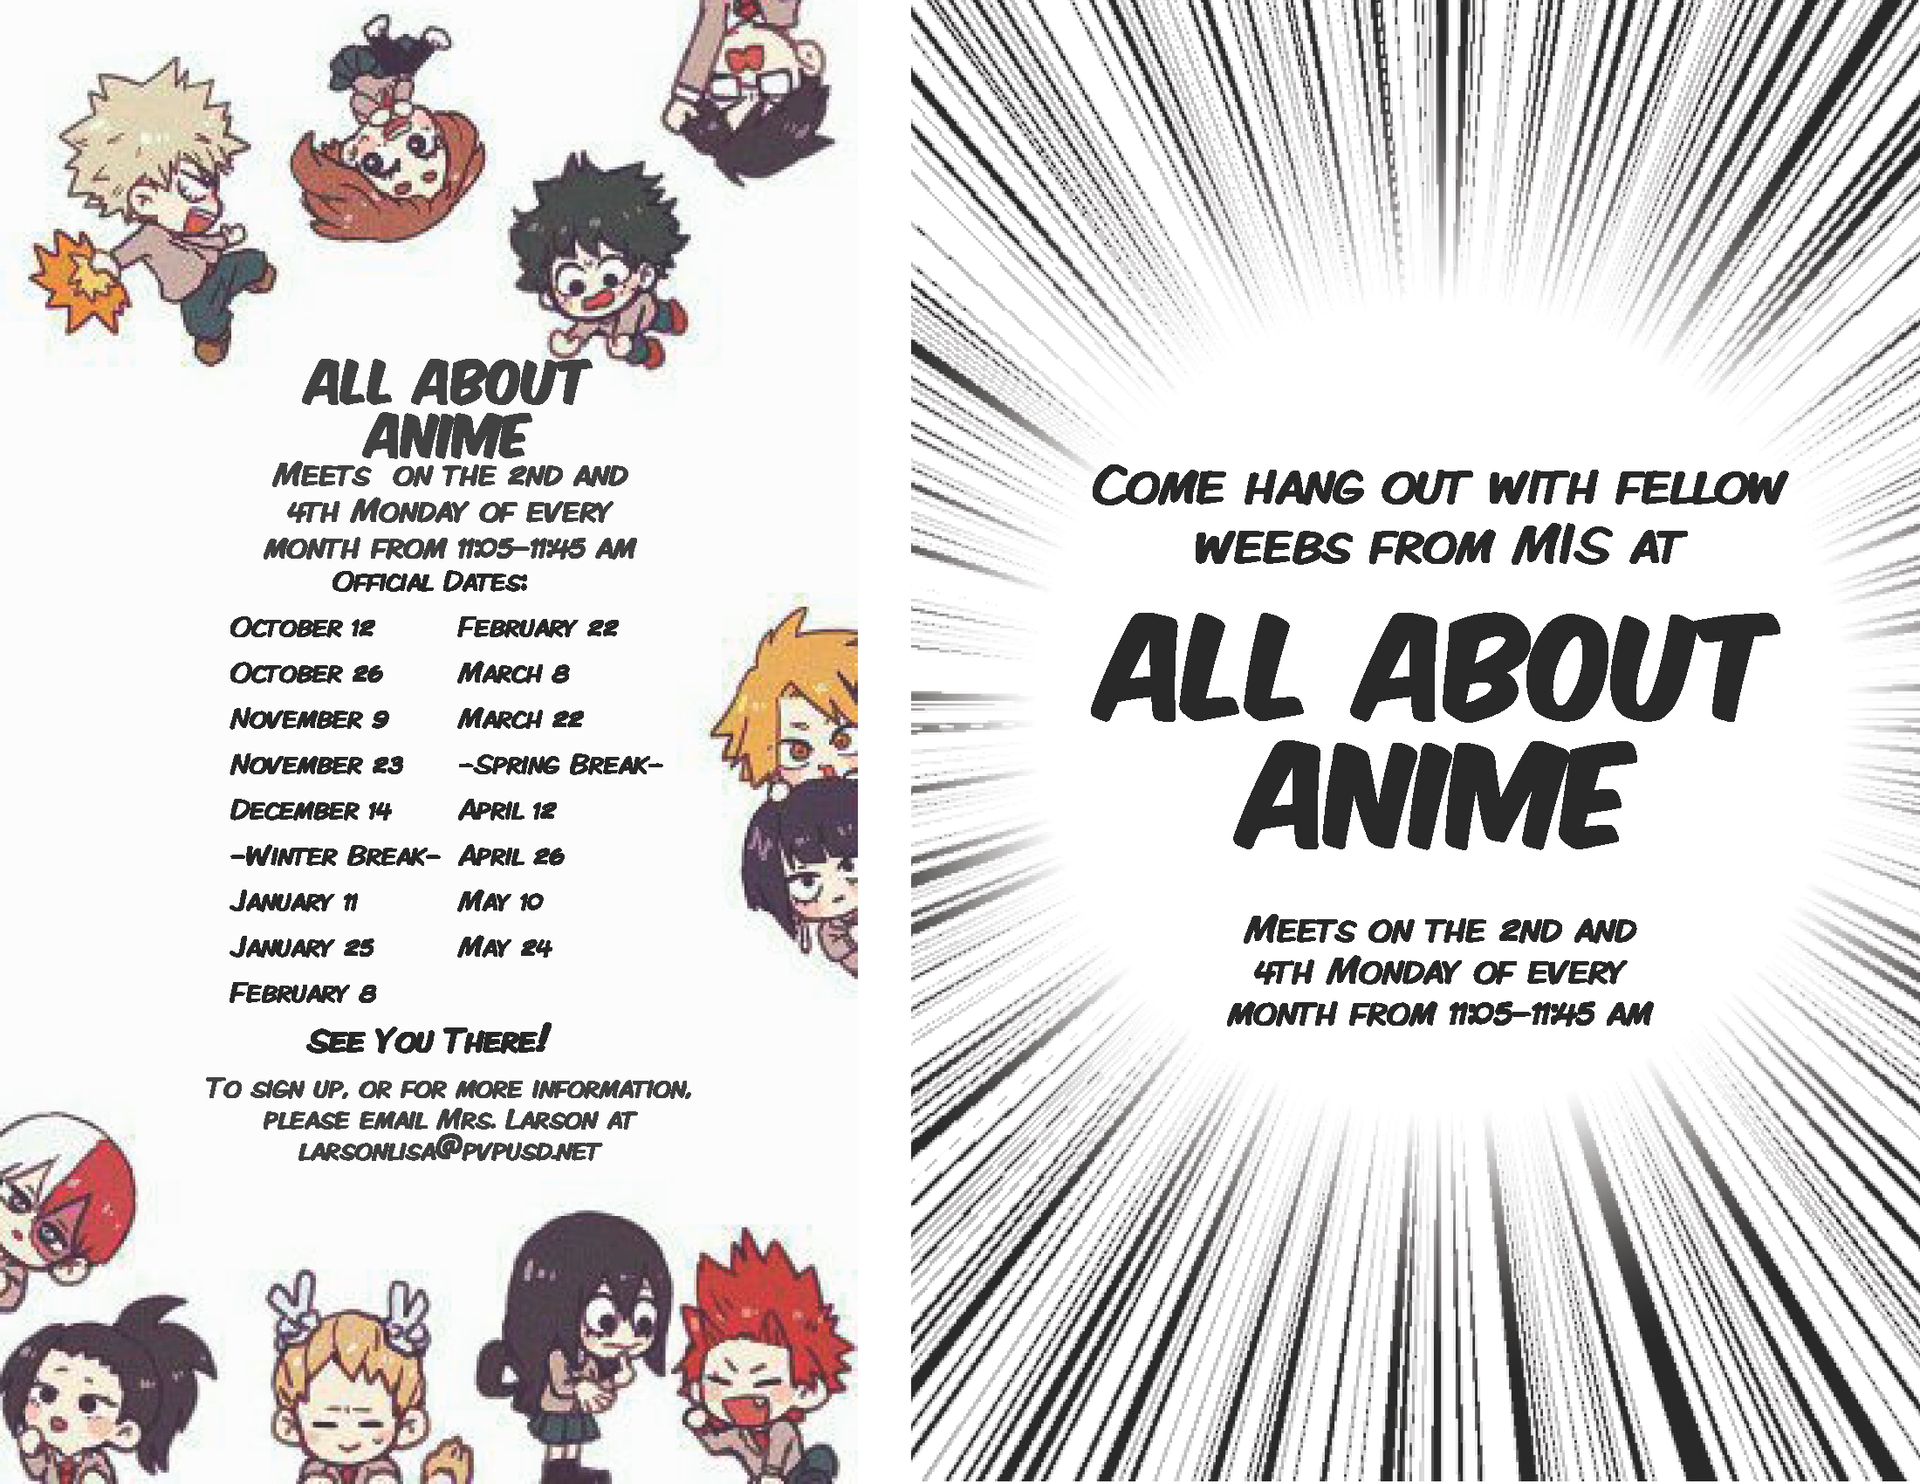 All About Anime Flier